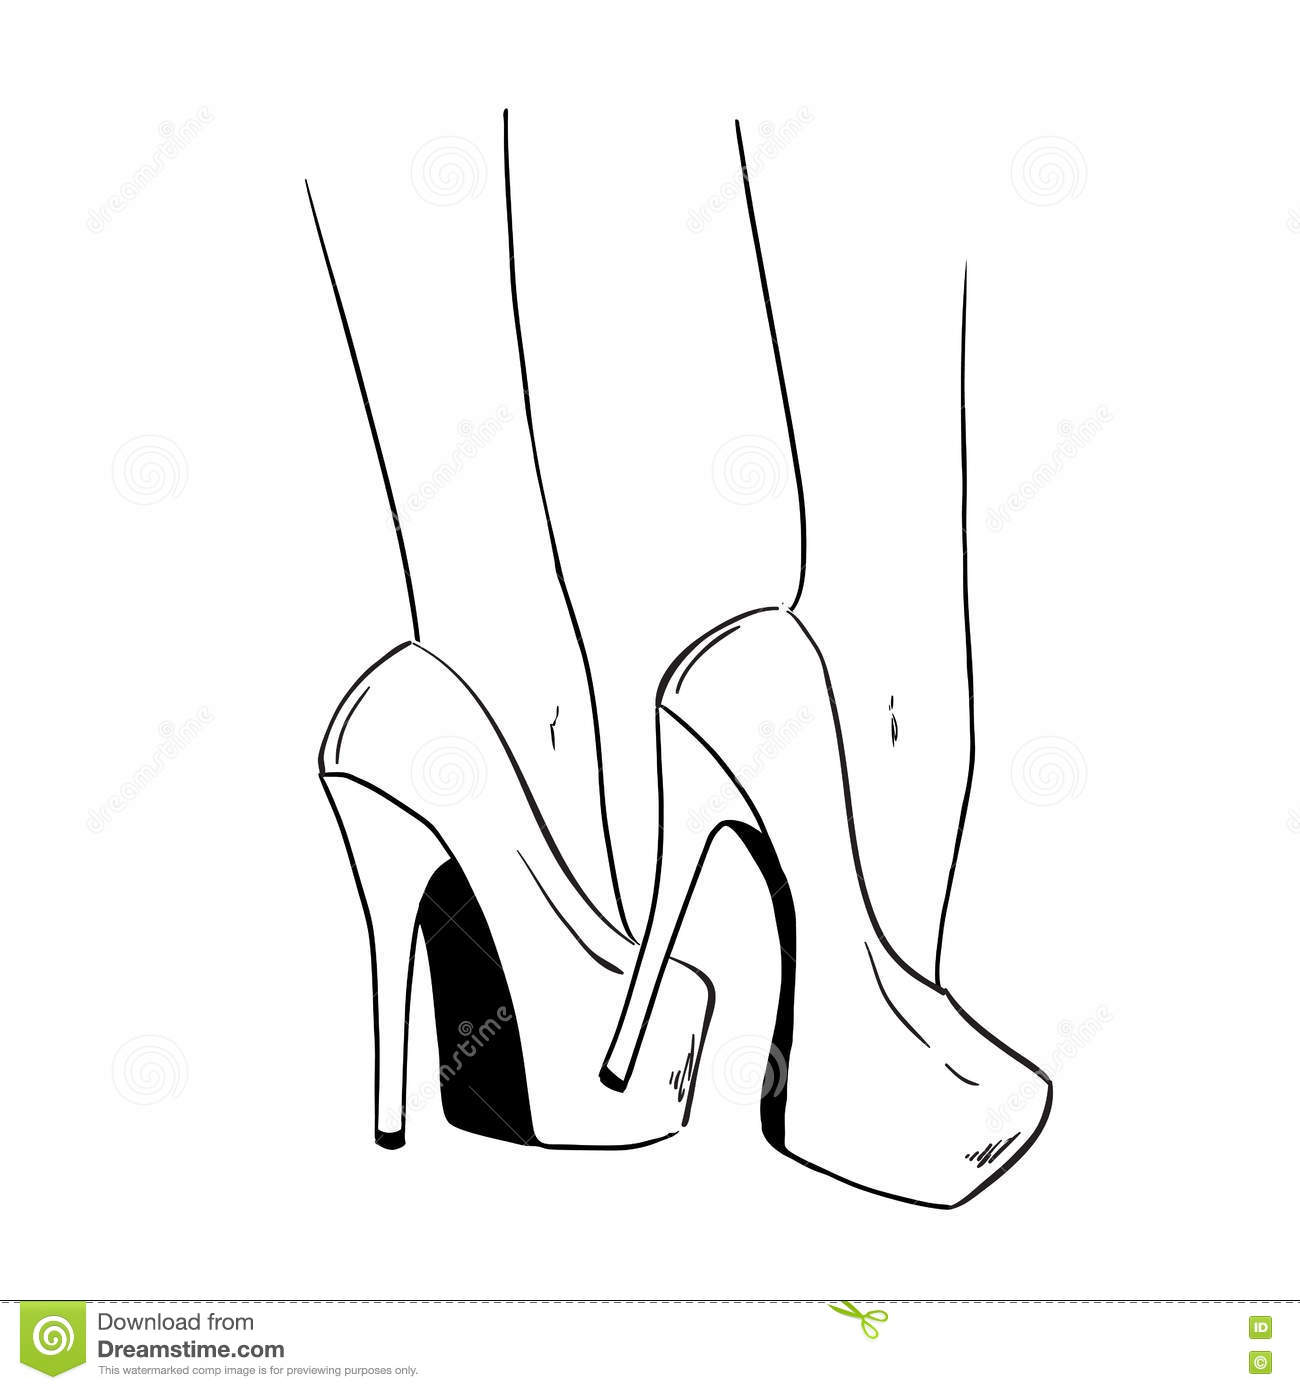 Woman Shoes With High Heels Fashion Illustration Stock